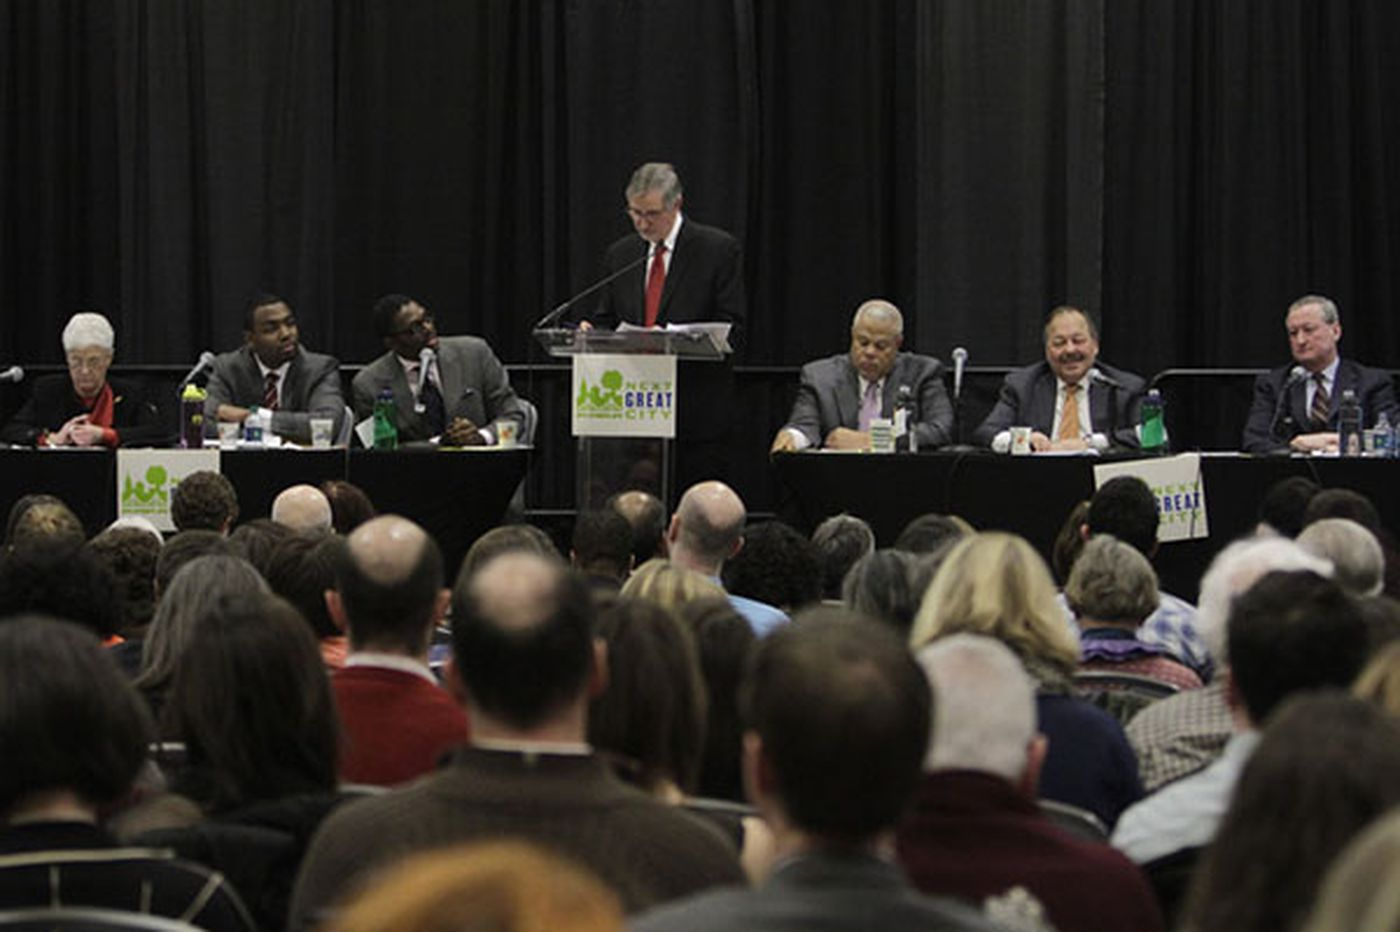 From fees to favorites: What 6 running for mayor said at forum